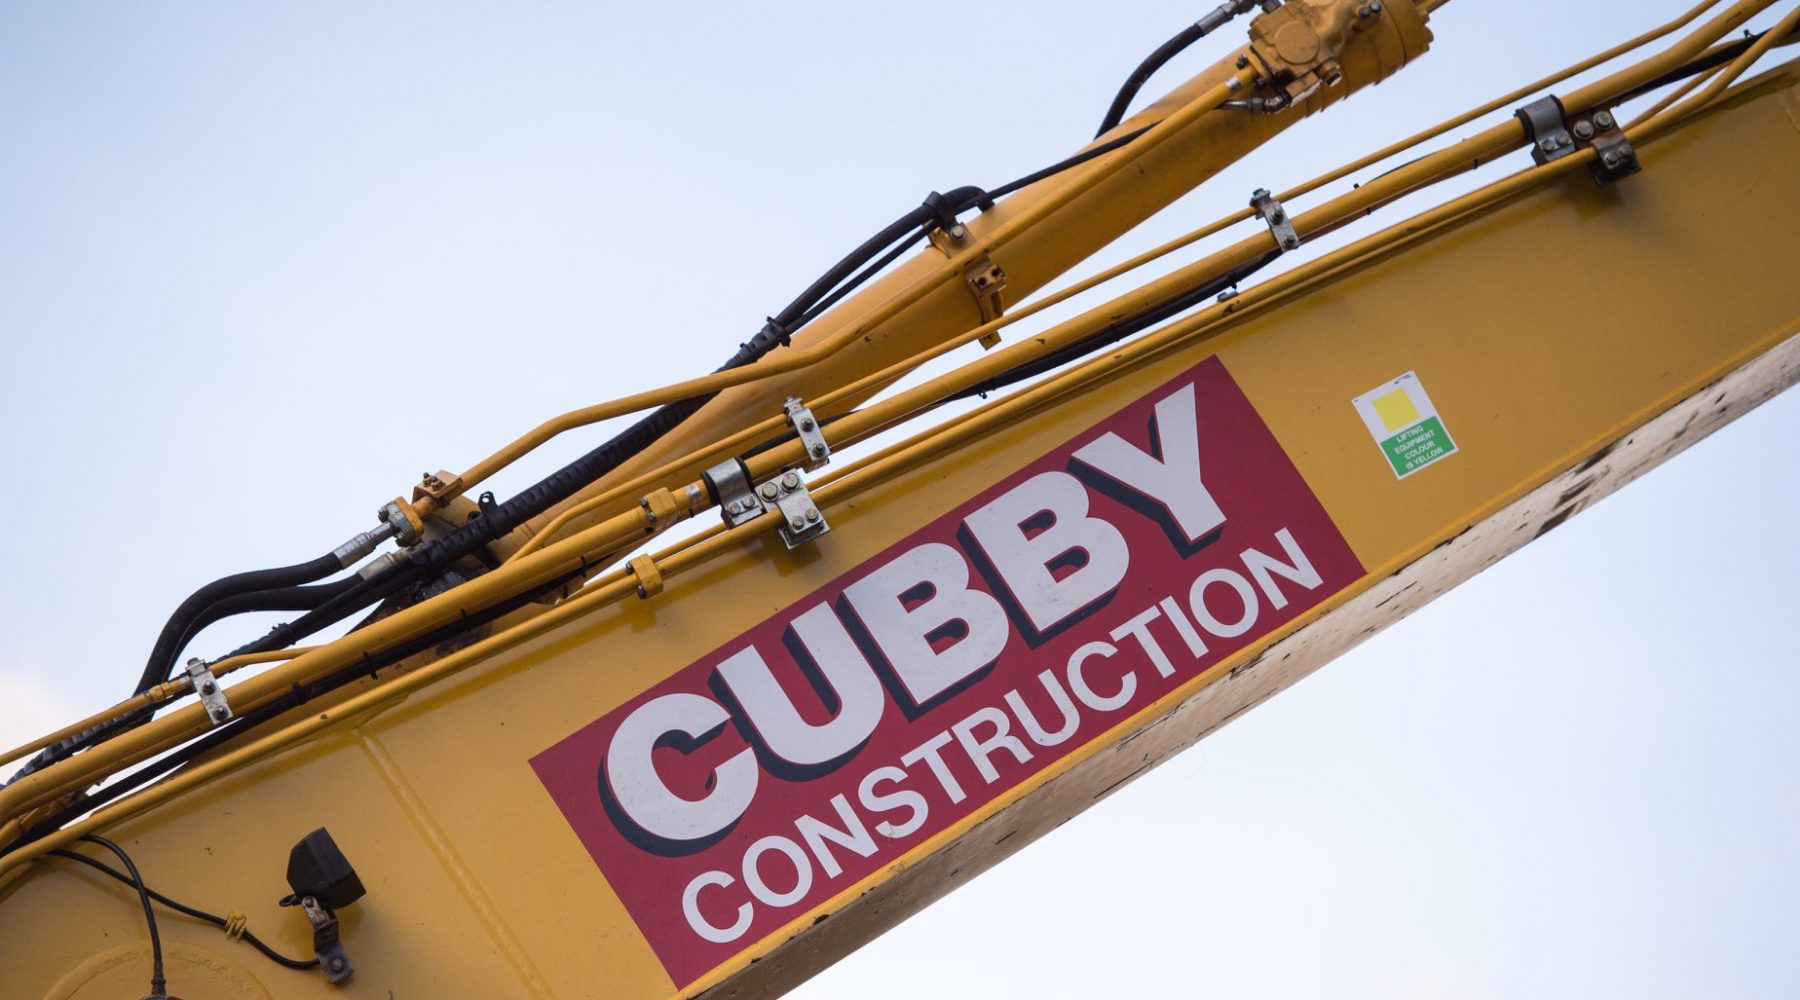 Cubby Construction Acquires Finlaysons Contracts from Esh Group